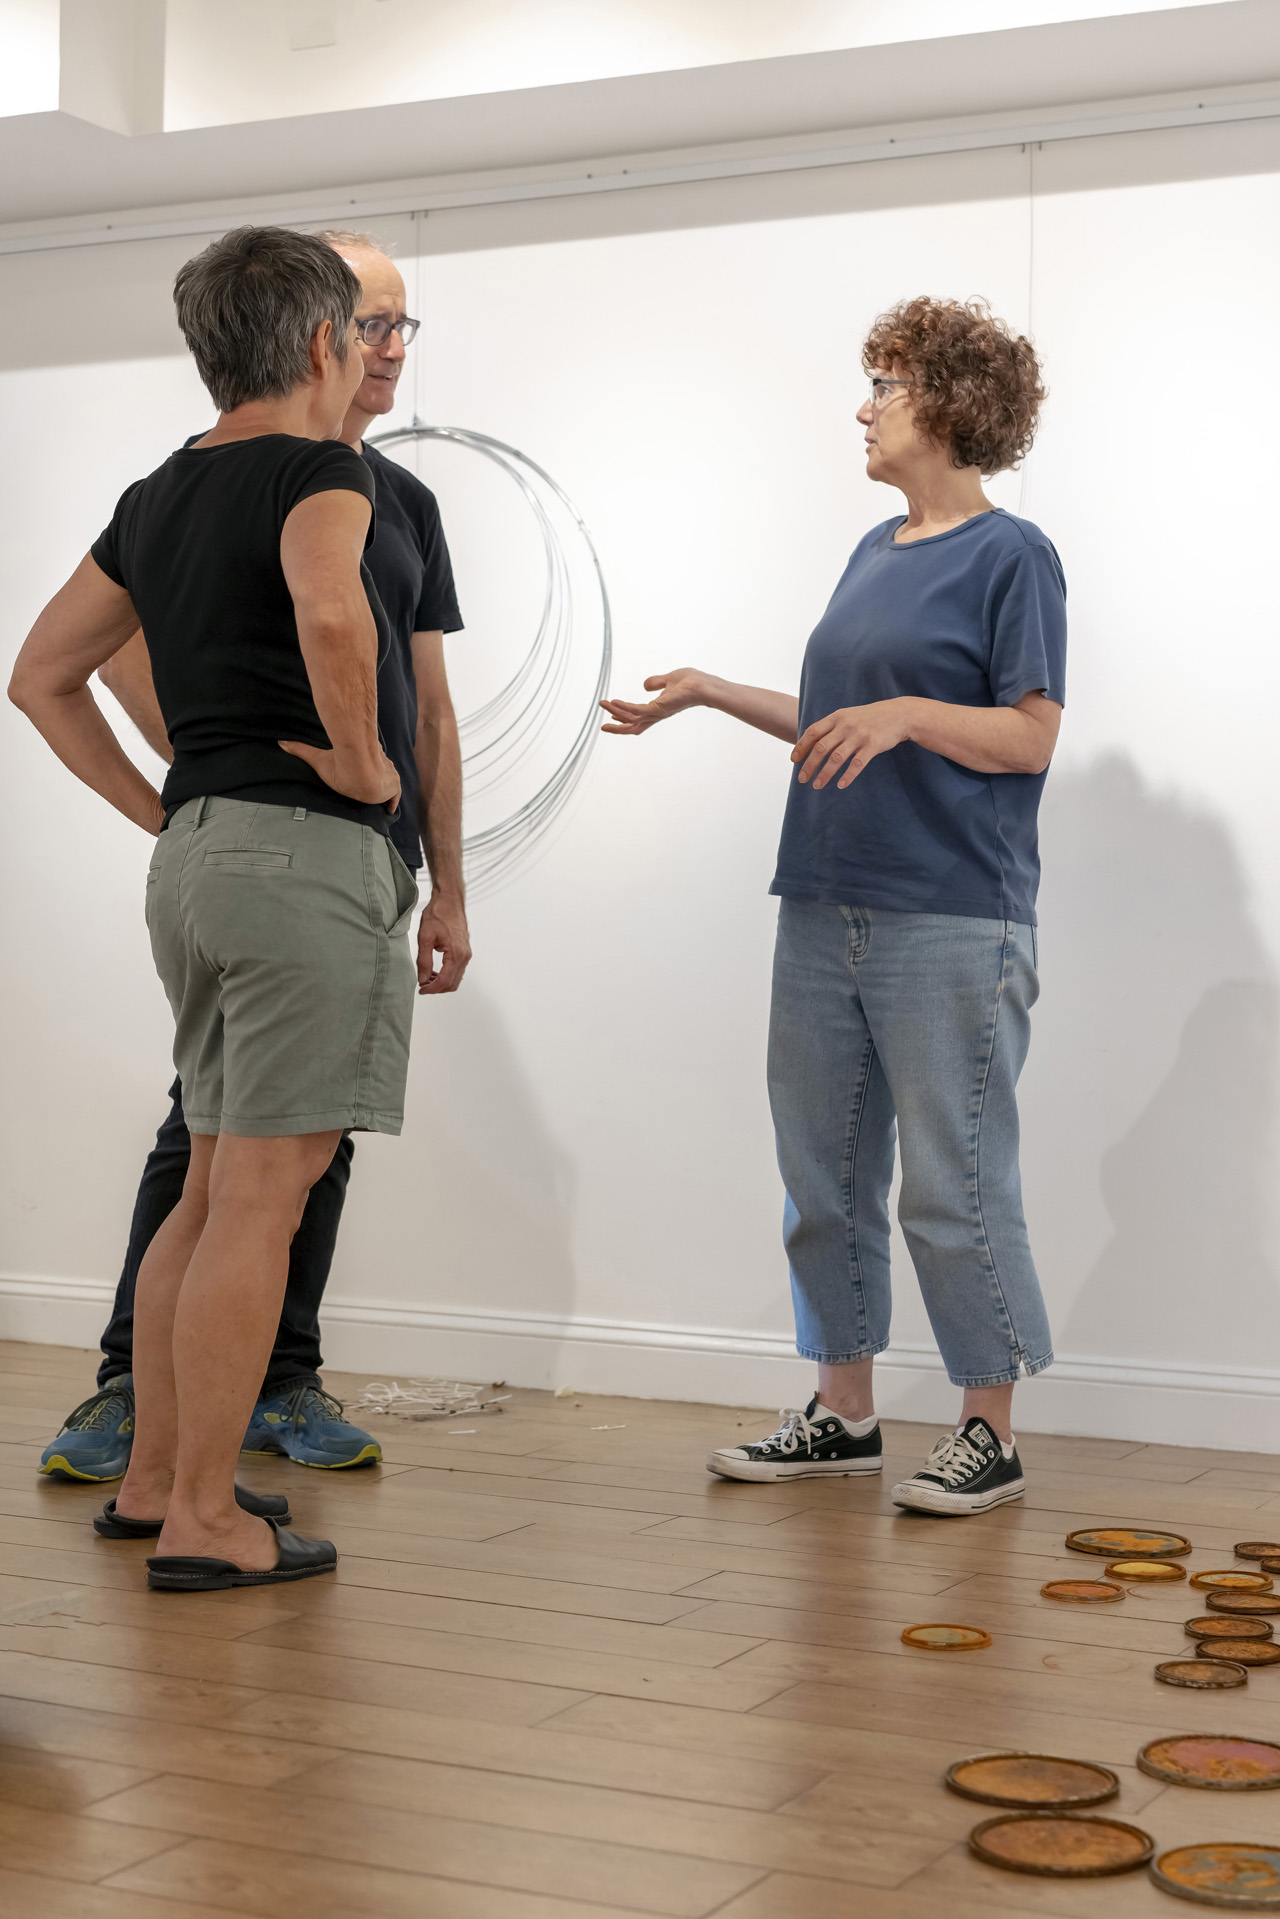 Studio Gallery artists Veronica Szalus and Pam Frederick, discussing installation